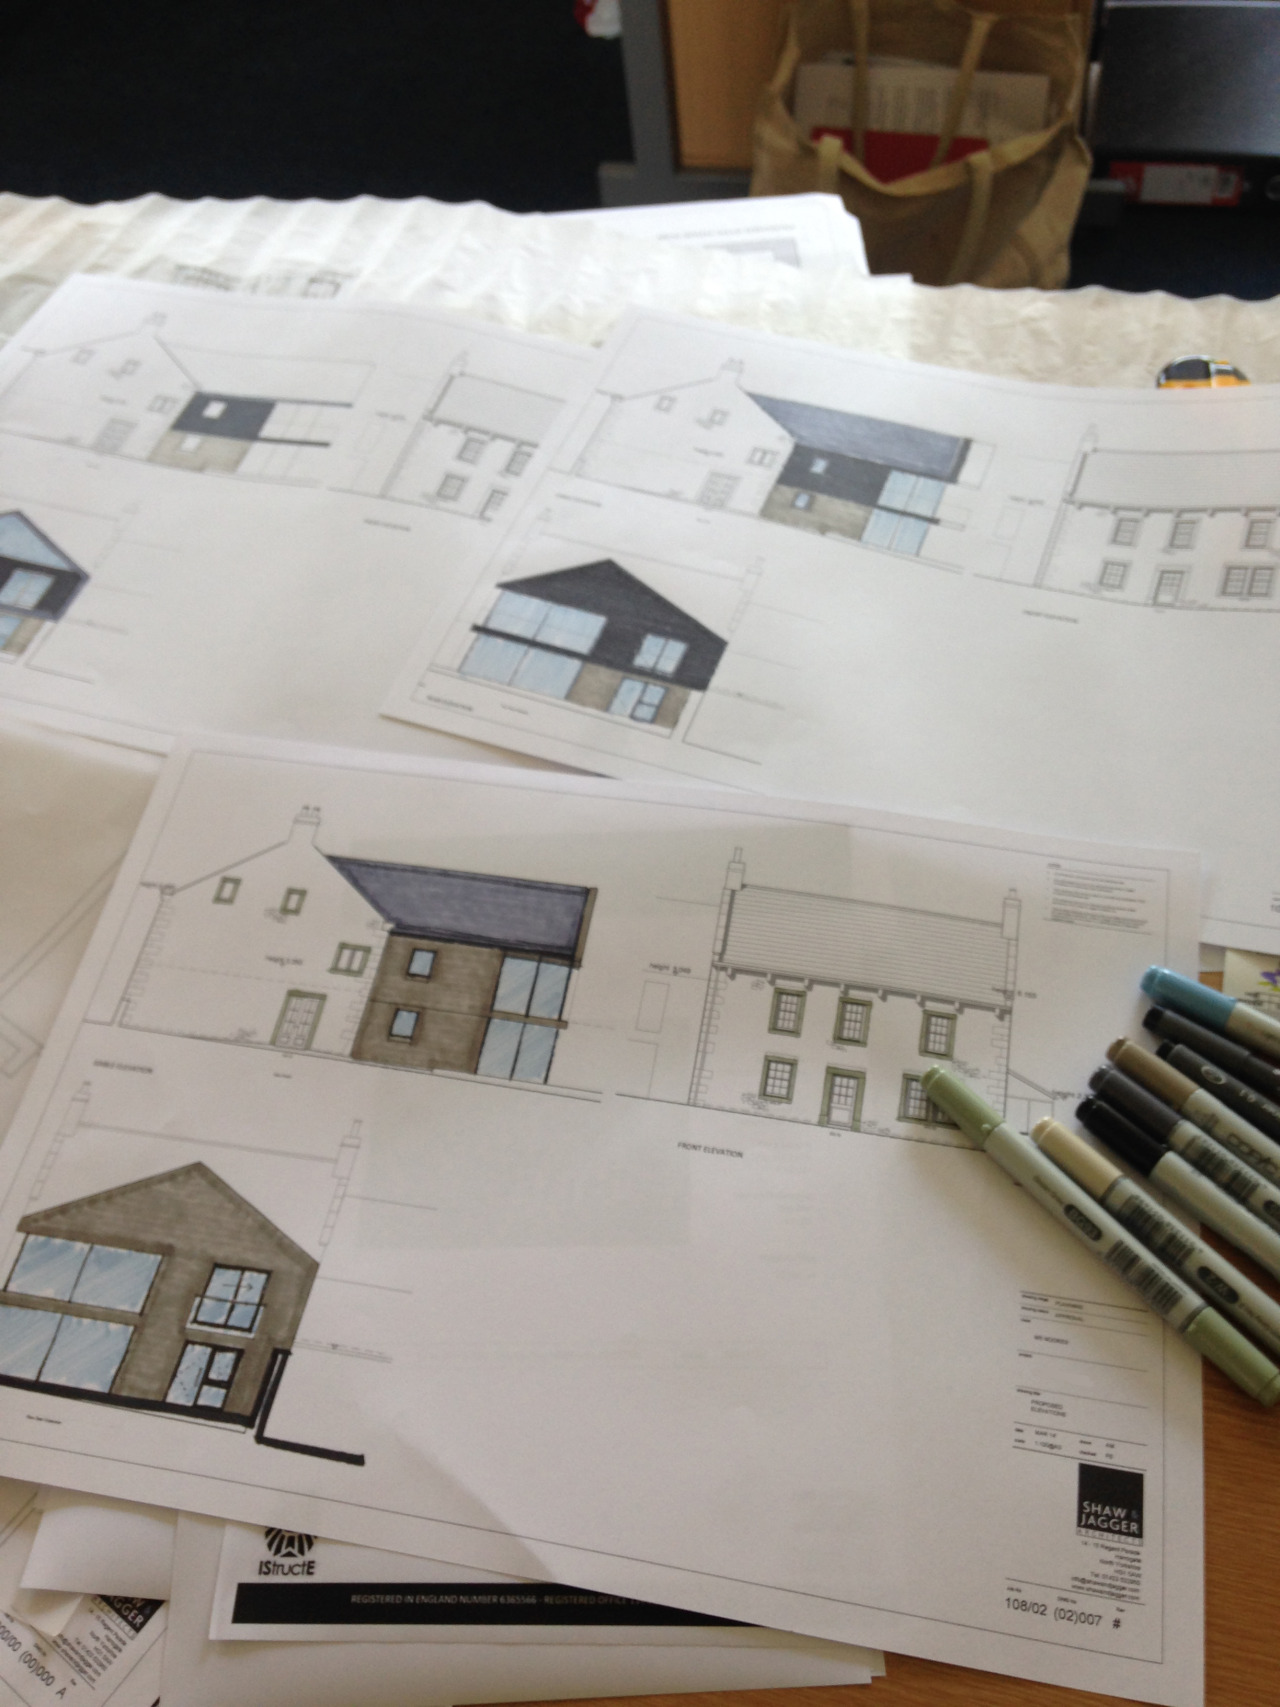 On My Desk Today: Mostly working on a new build extension to a farm complex in Lancashire, sketching out some initial ideas over the existing elevations.